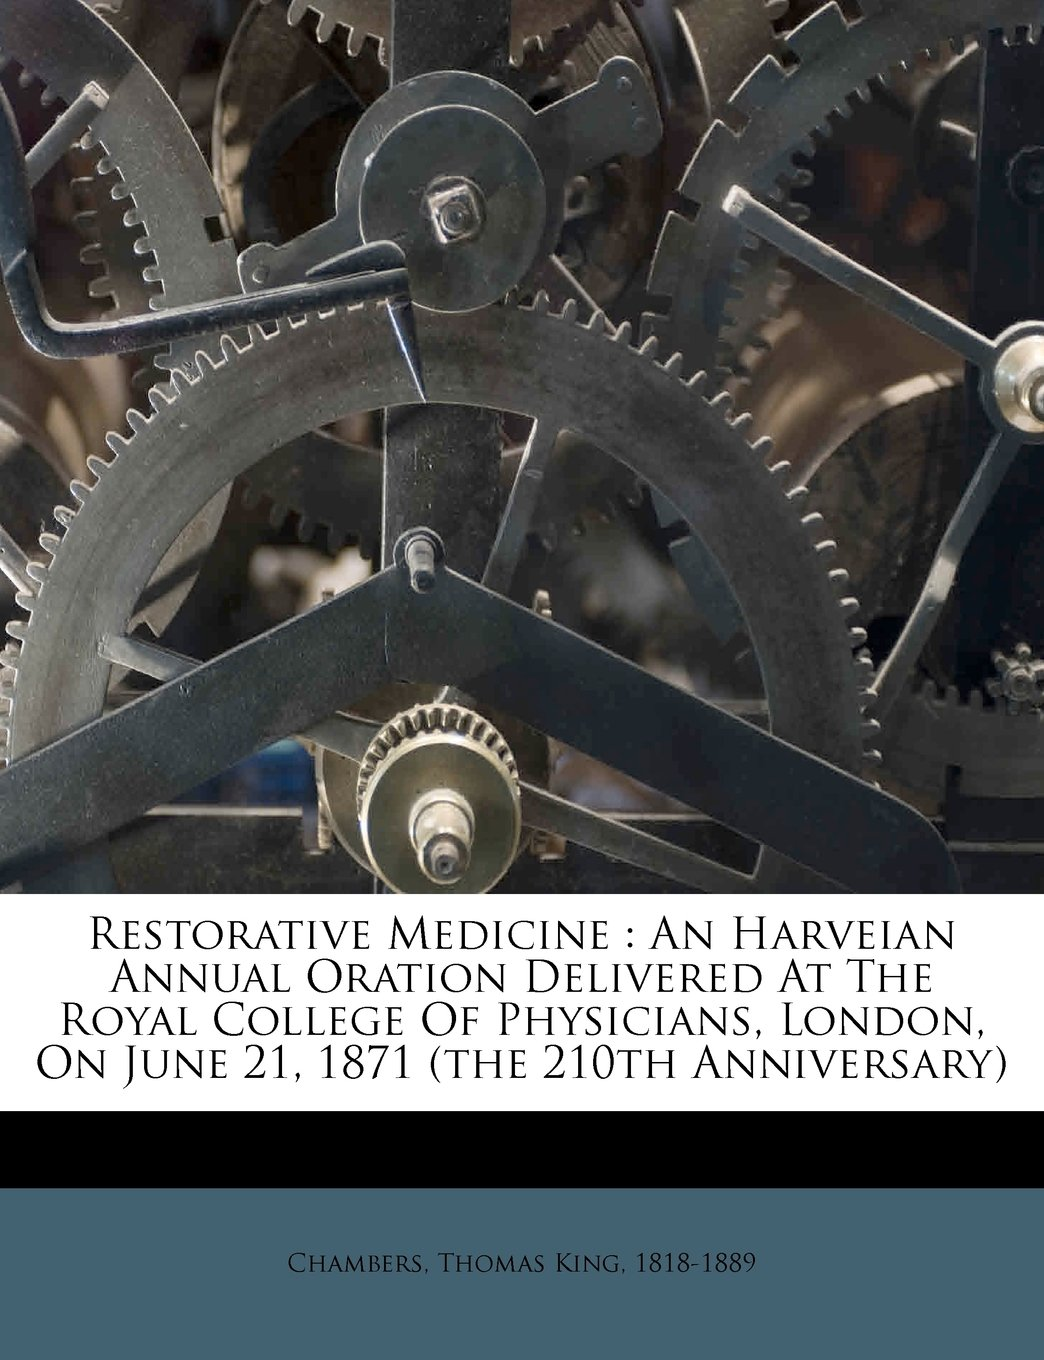 Restorative Medicine: An Harveian Annual Oration Delivered At The Royal College Of Physicians, London, On June 21, 1871 (the 210th Anniversary) pdf